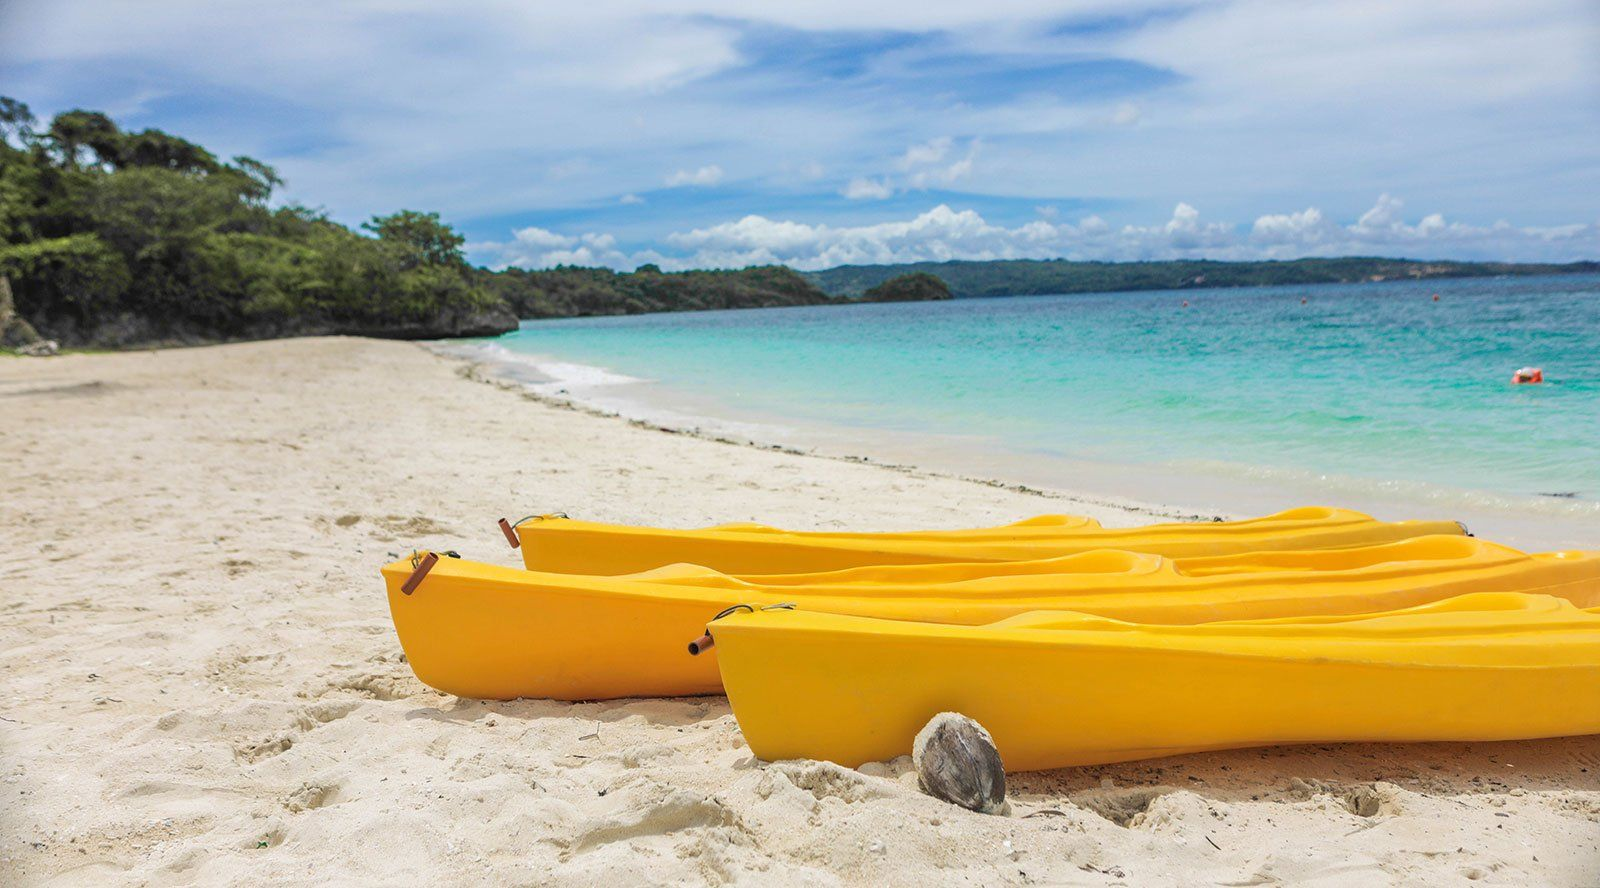 5D4N Boracay Package with Airfare | Belmont Hotel from Manila - day 5